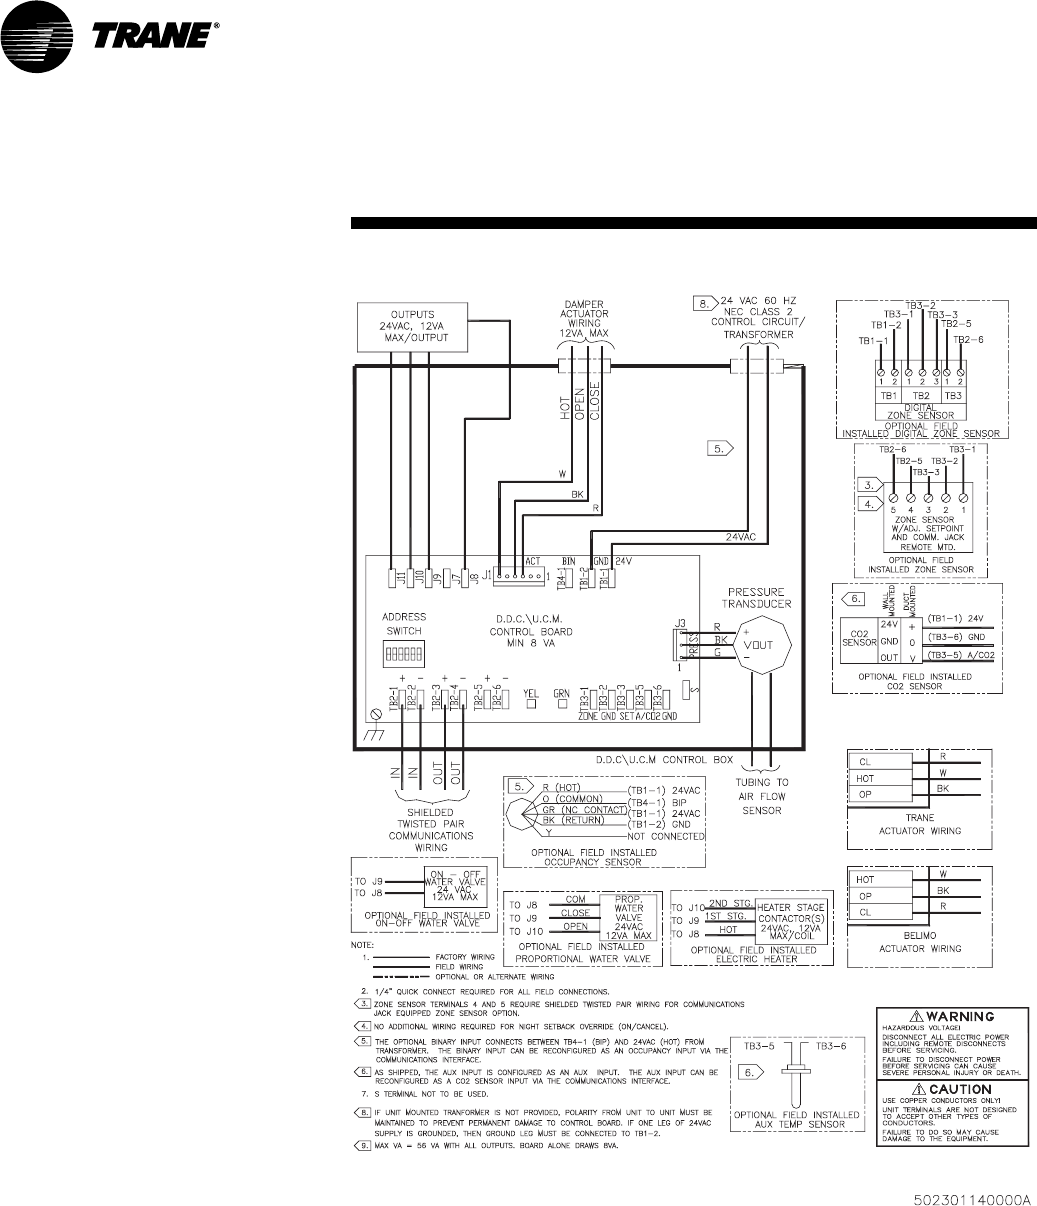 d4caf1d7 0cc1 45f7 9cd7 ab973dff8ed8 bg6 page 6 of trane air conditioner unit control module (ucm) 4 2 wiring diagram for trane air conditioner at gsmx.co